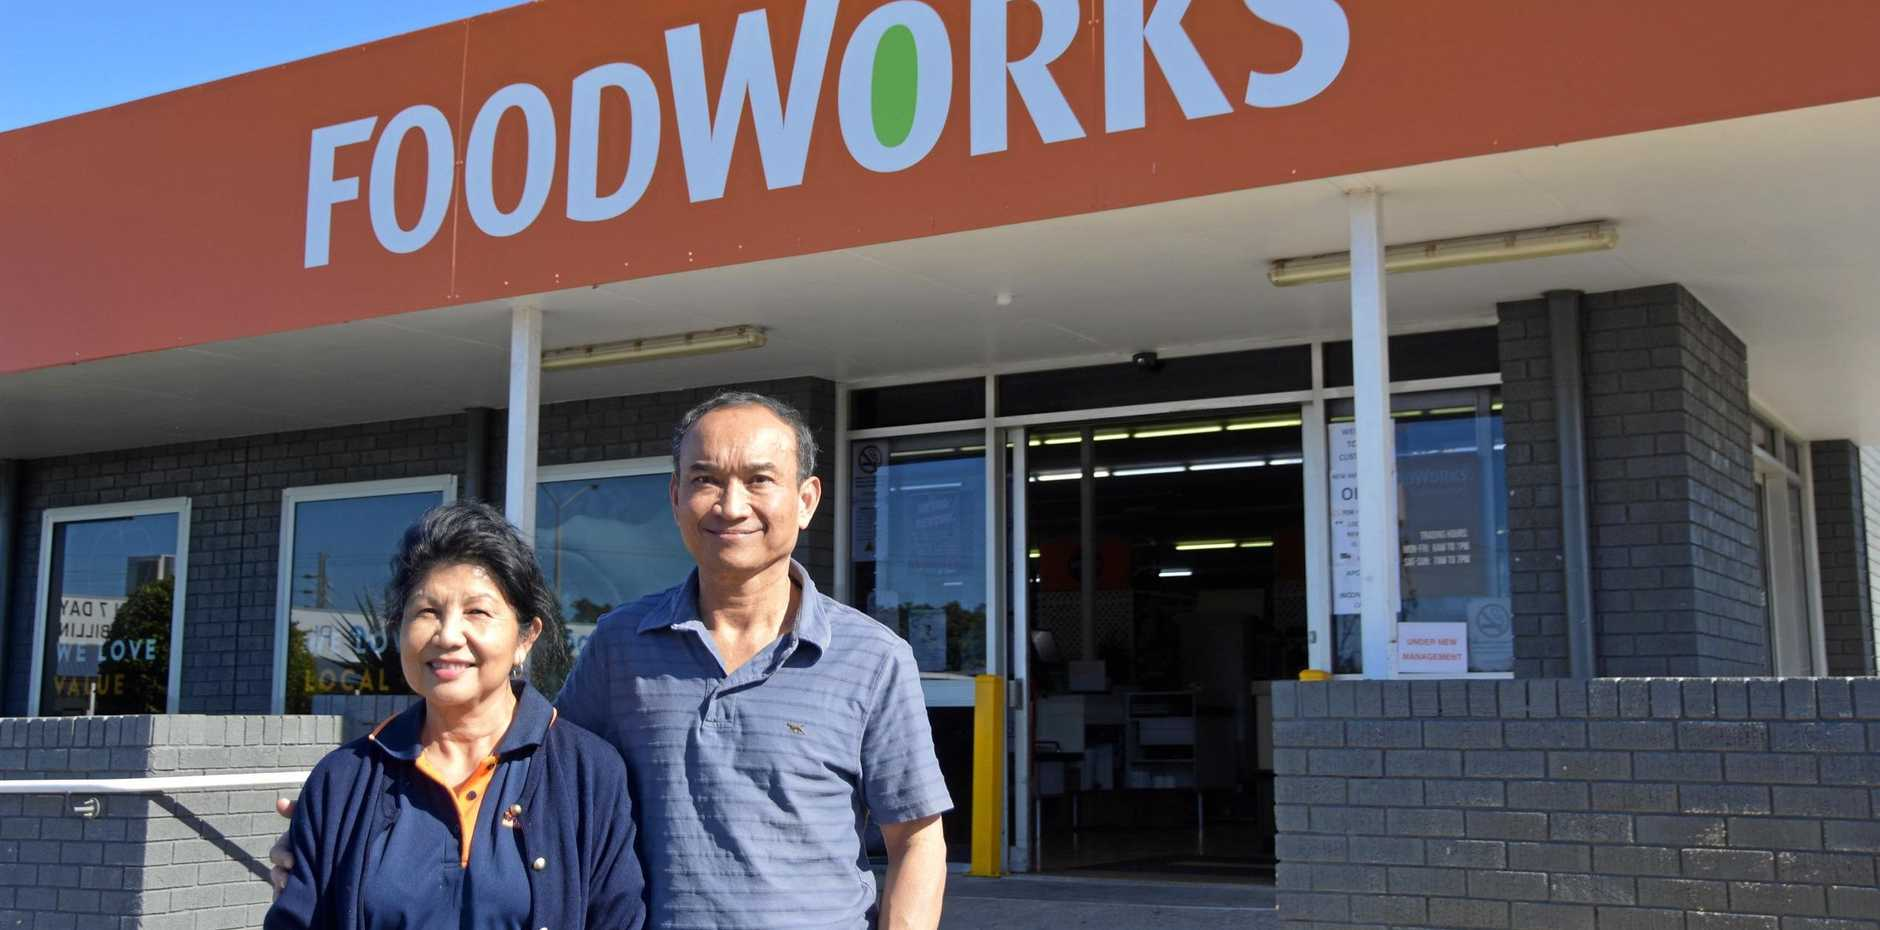 NEW OWNERSHIP: meet the new owners of the Toolooa St Foodworks, Serey Pao and Sam Pao.